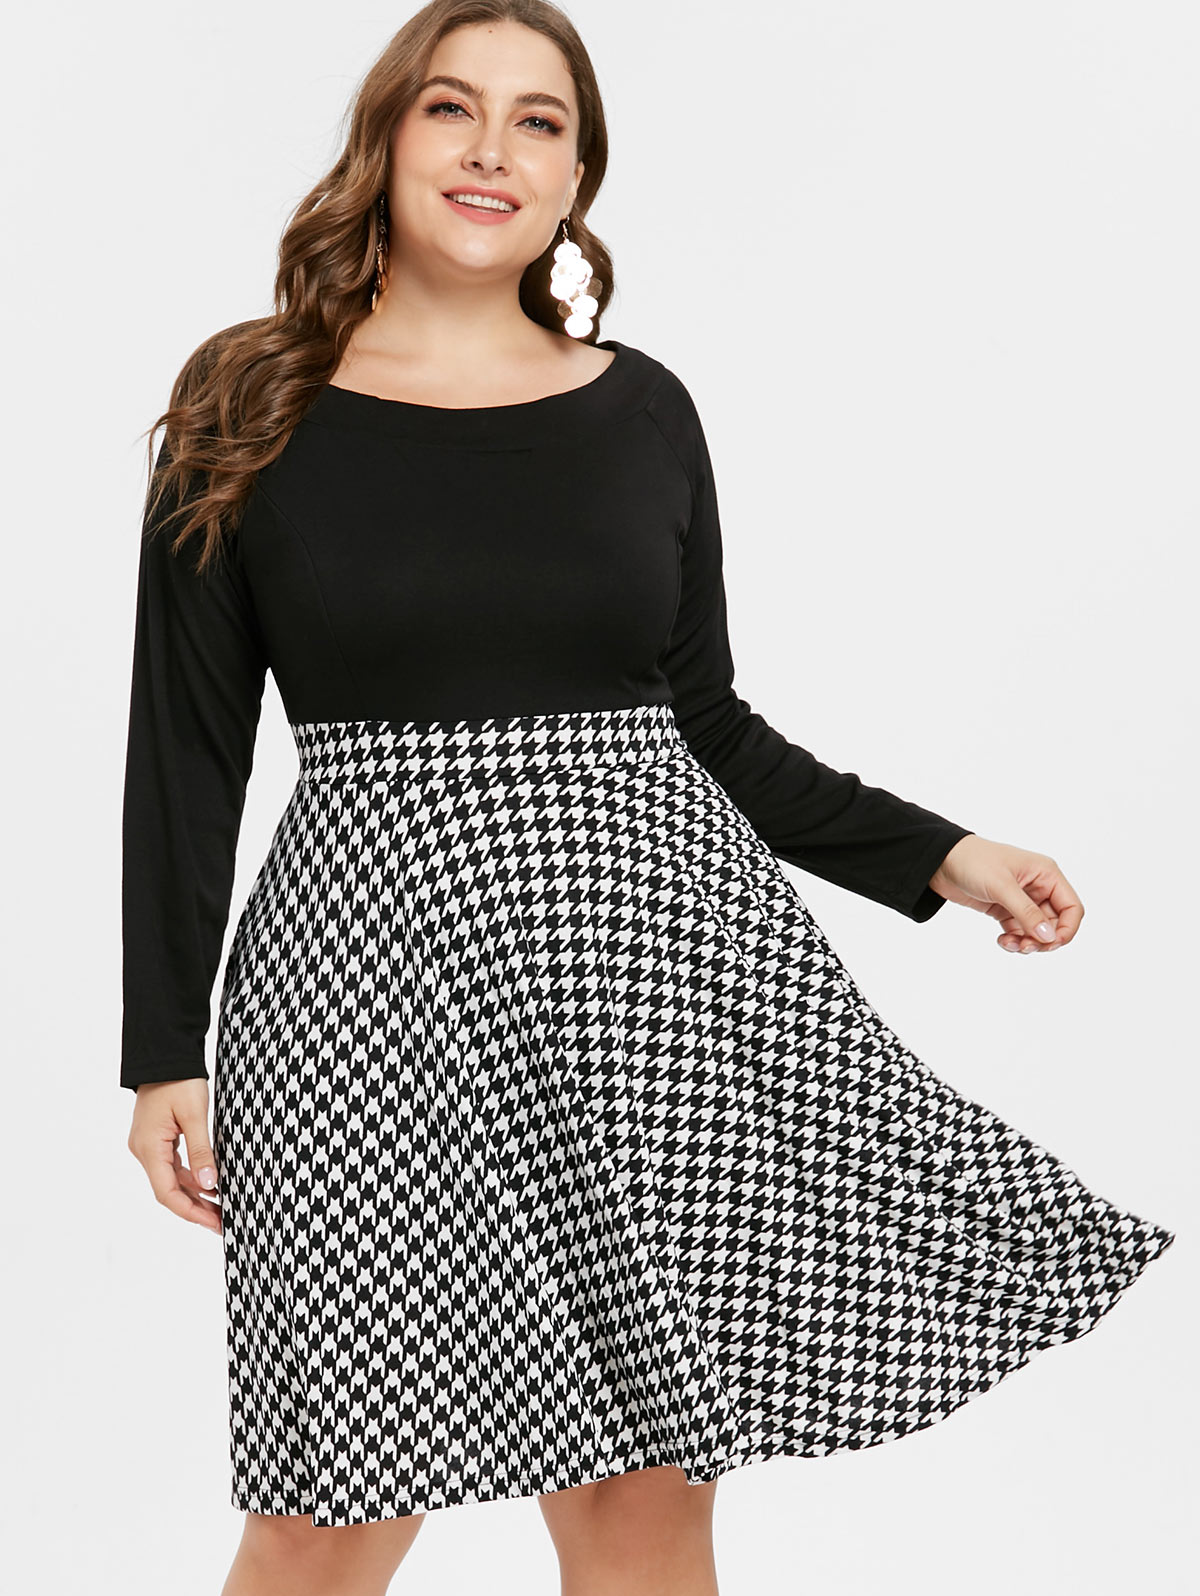 US $19.44 48% OFF|Wipalo Houndstooth Pattern Plus Size Long Sleeve Vintage  Dresses Fit And Flare A Line Knee Length Dress Vestido Party Dresses-in ...